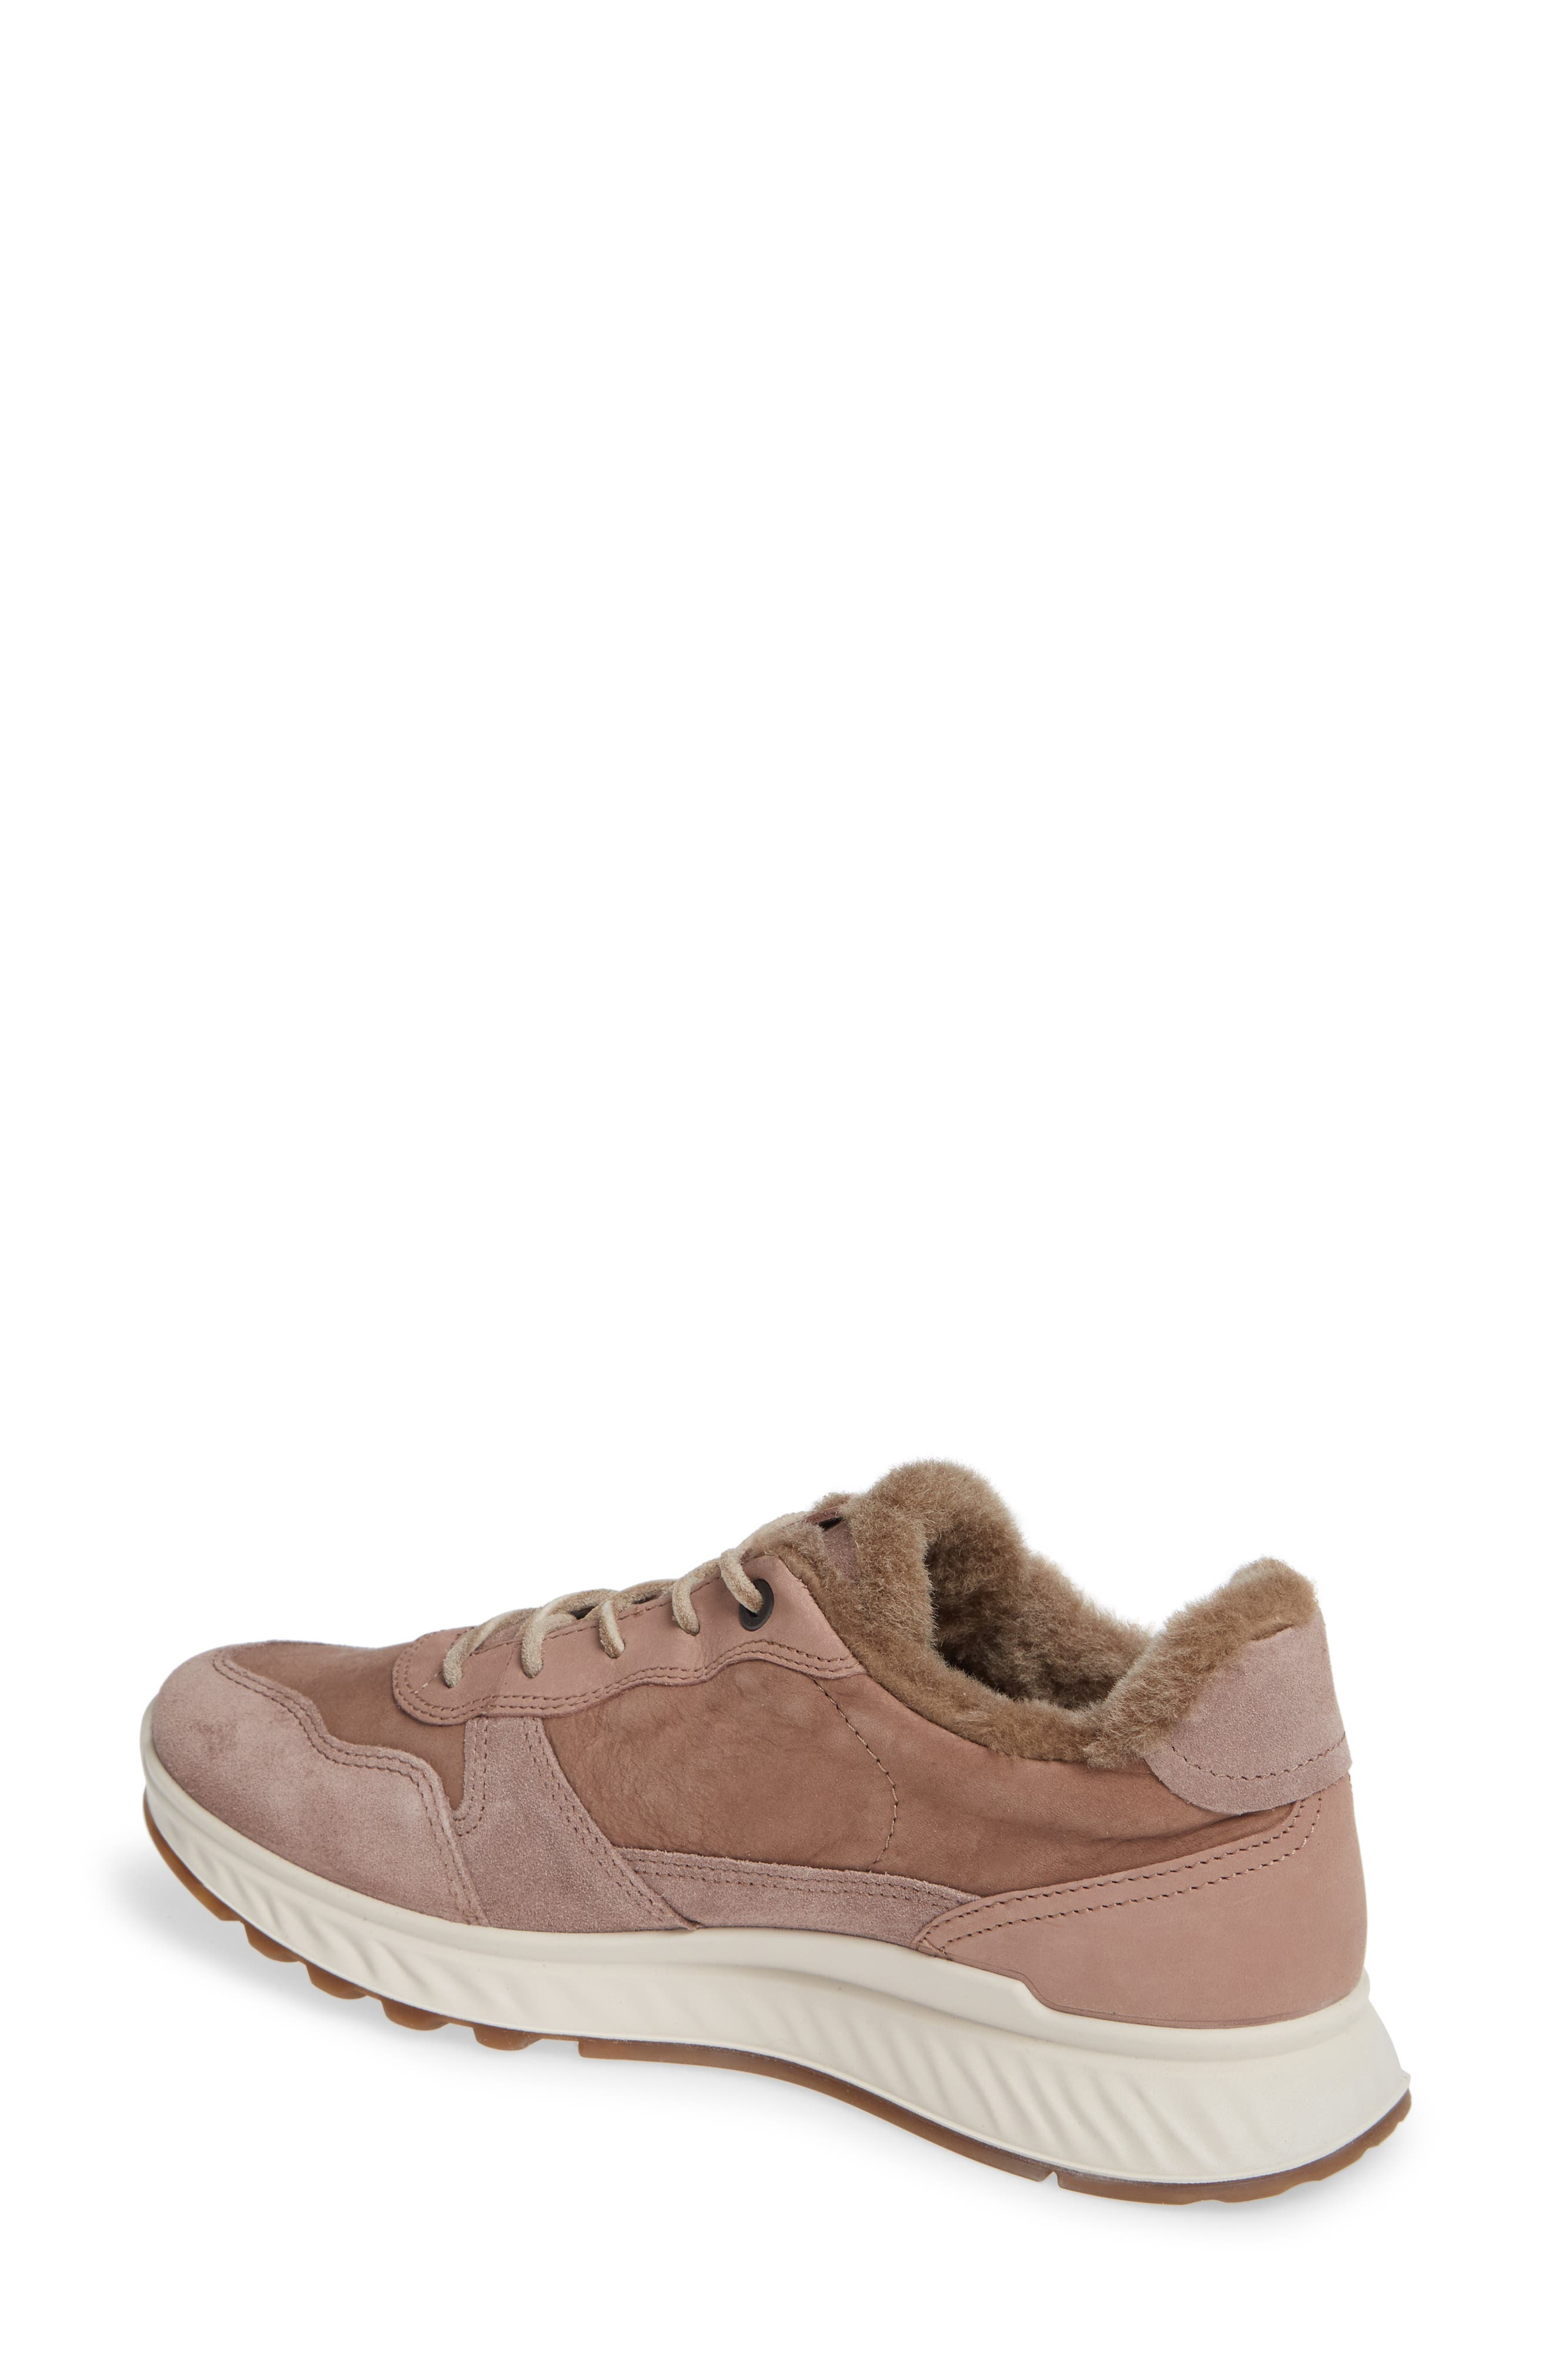 ST1 Genuine Shearling Sneaker,                             Alternate thumbnail 2, color,                             DEEP TAUPE NUBUCK LEATHER